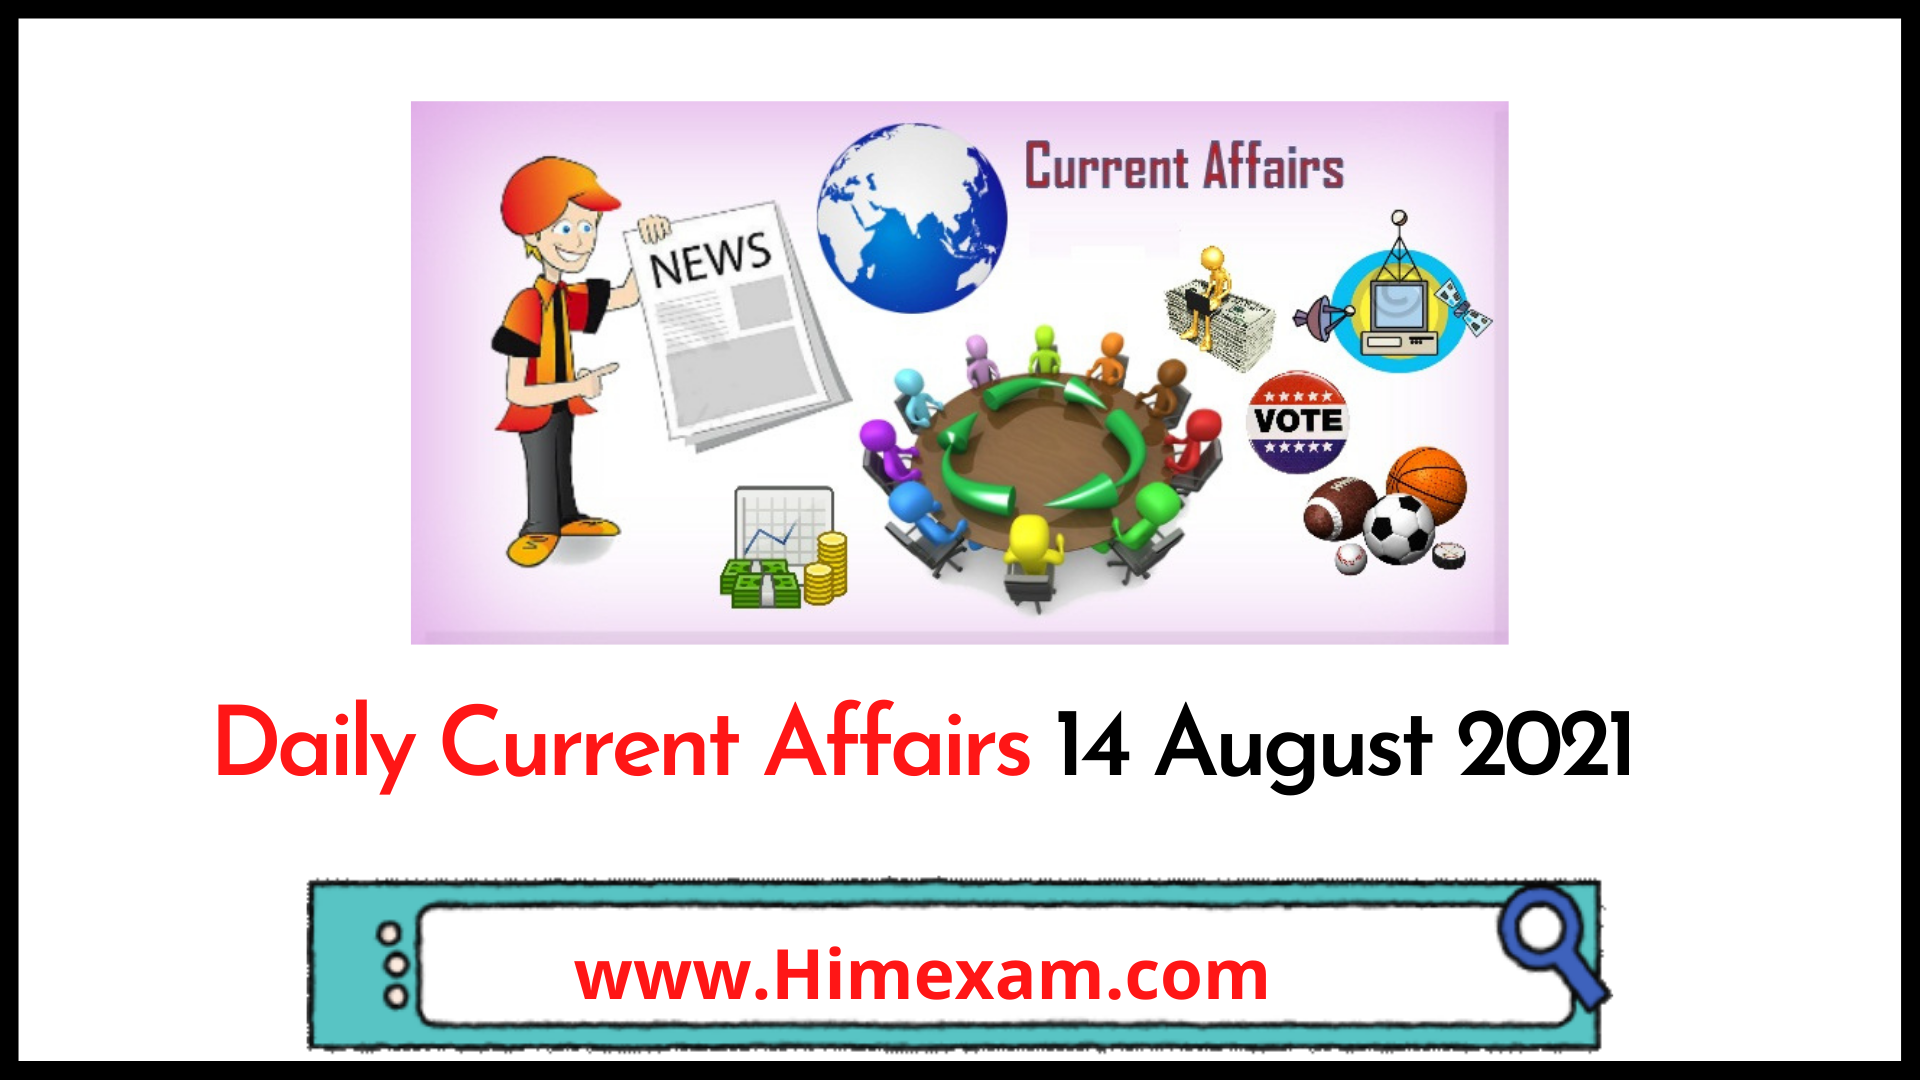 Daily Current Affairs 14 August 2021